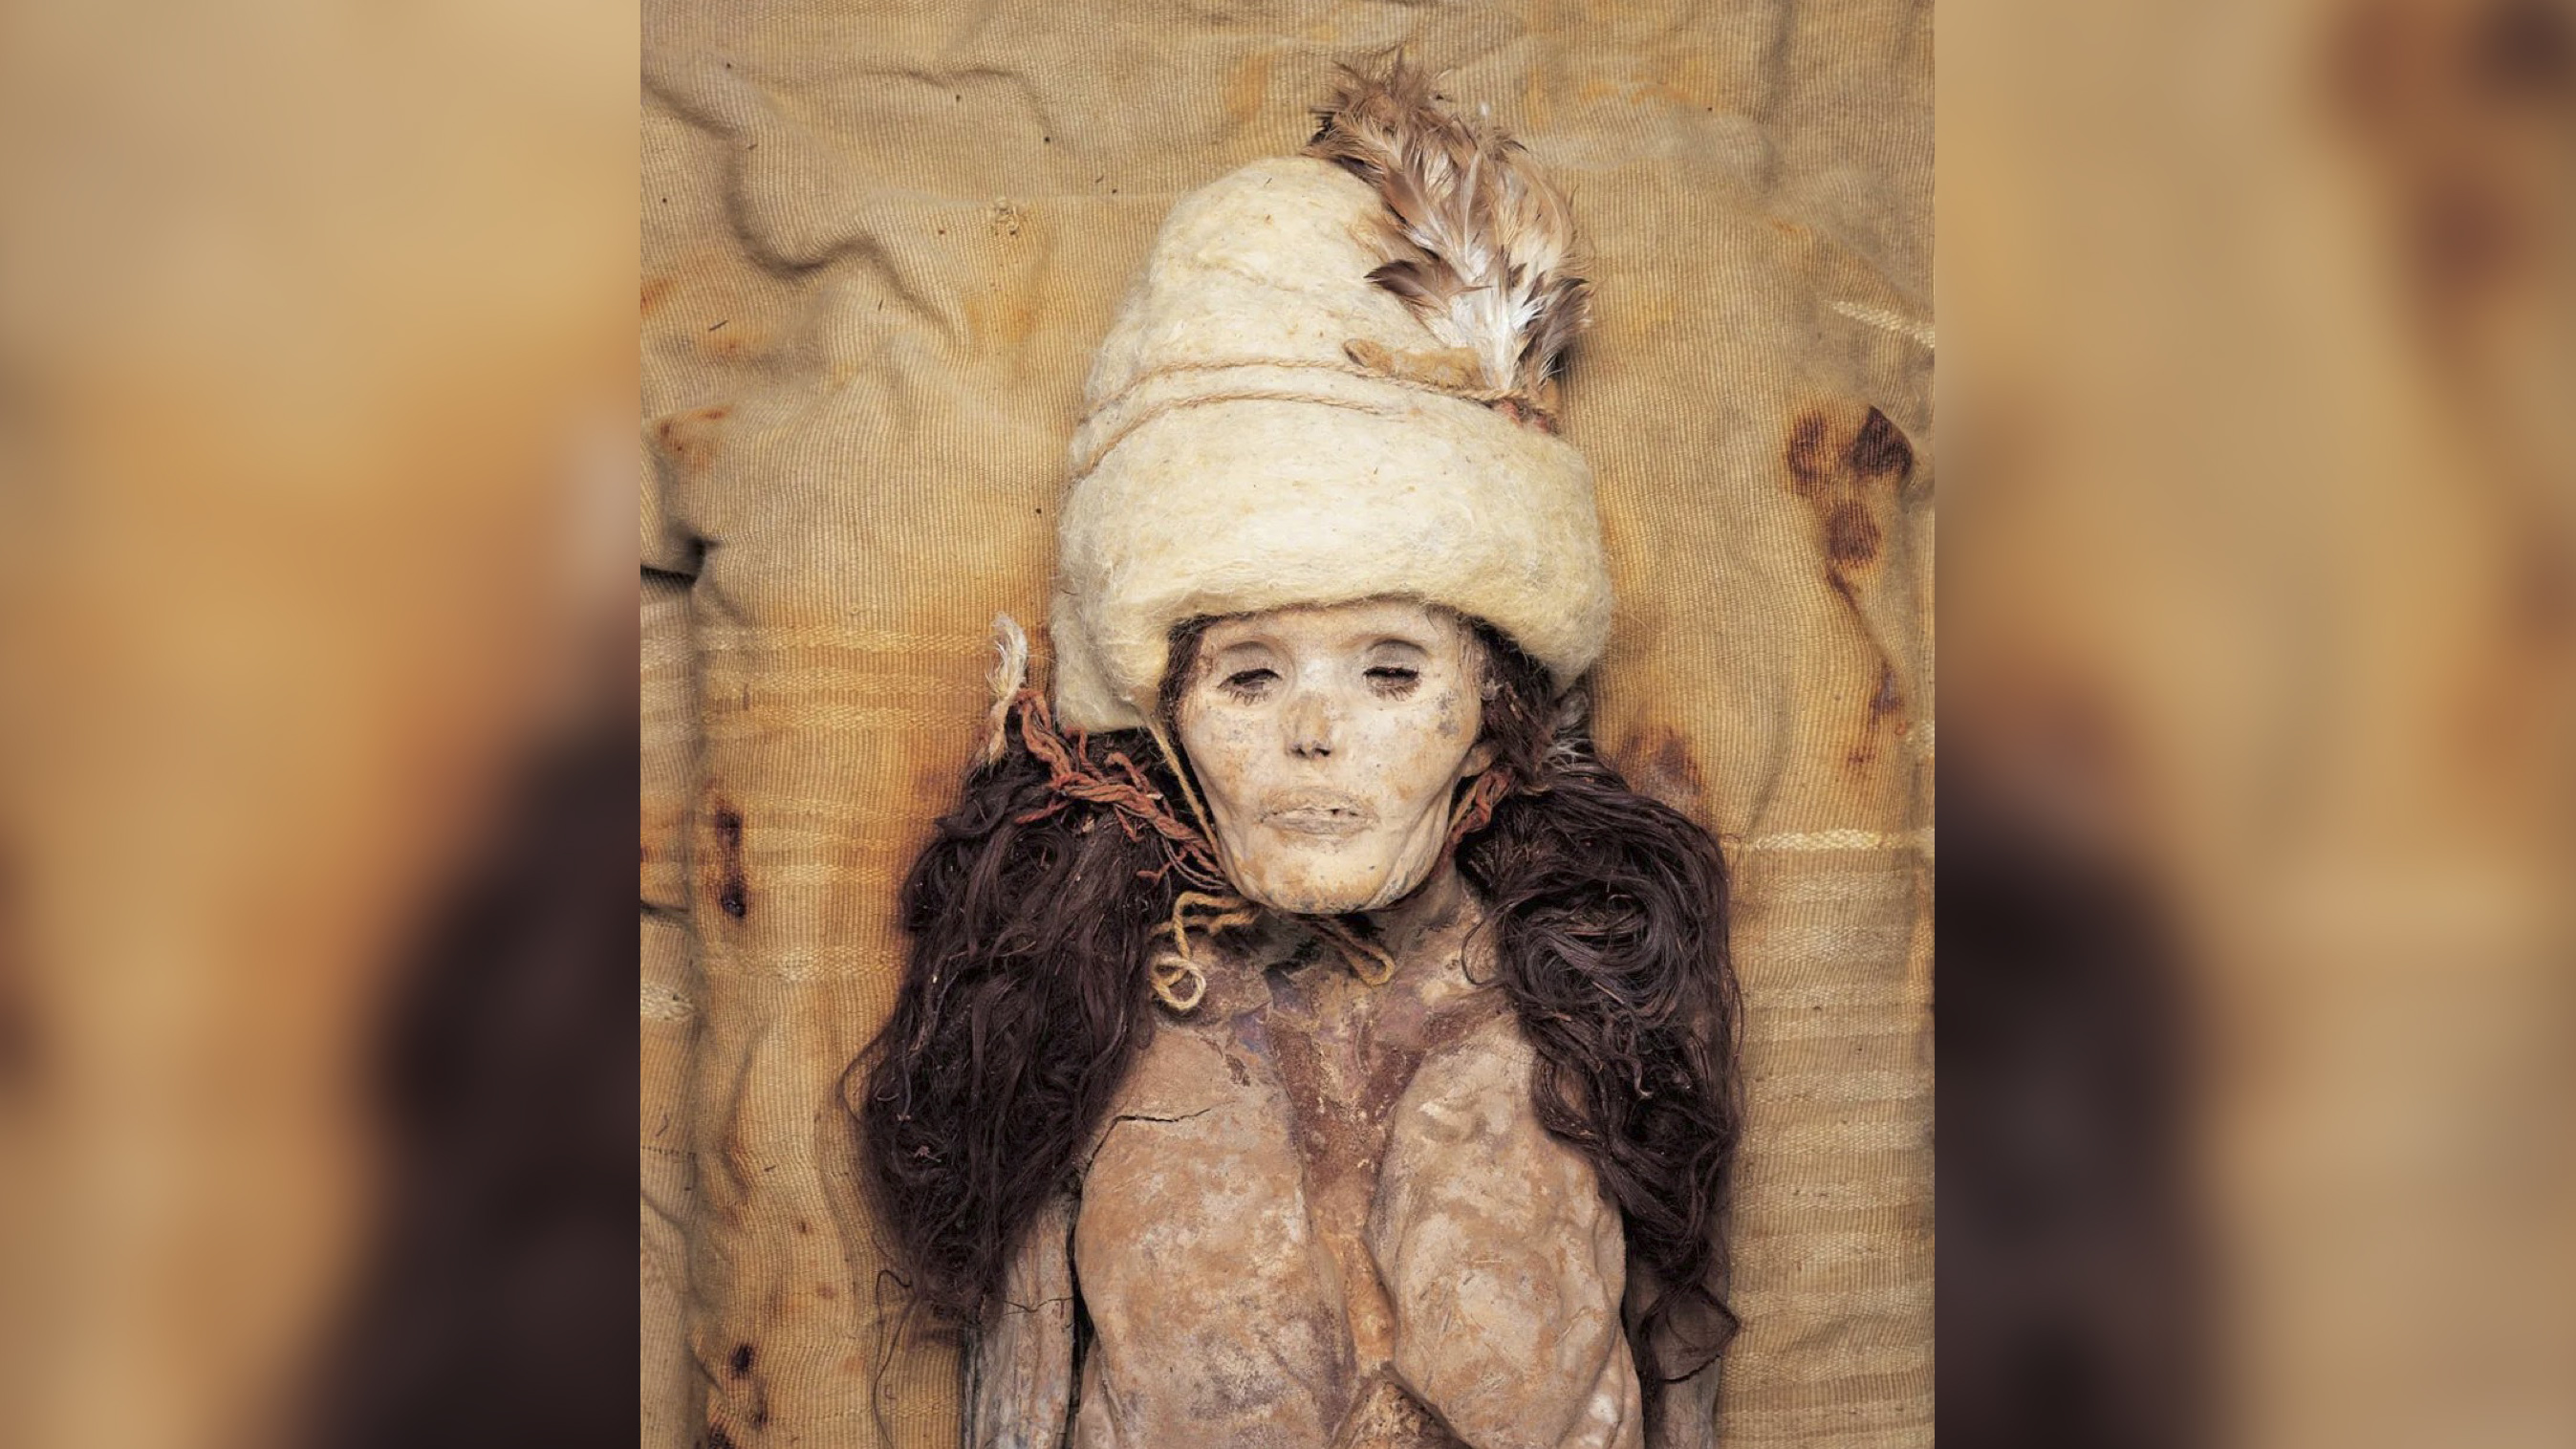 Bronze Age Tarim mummies aren't who scientists thought they were